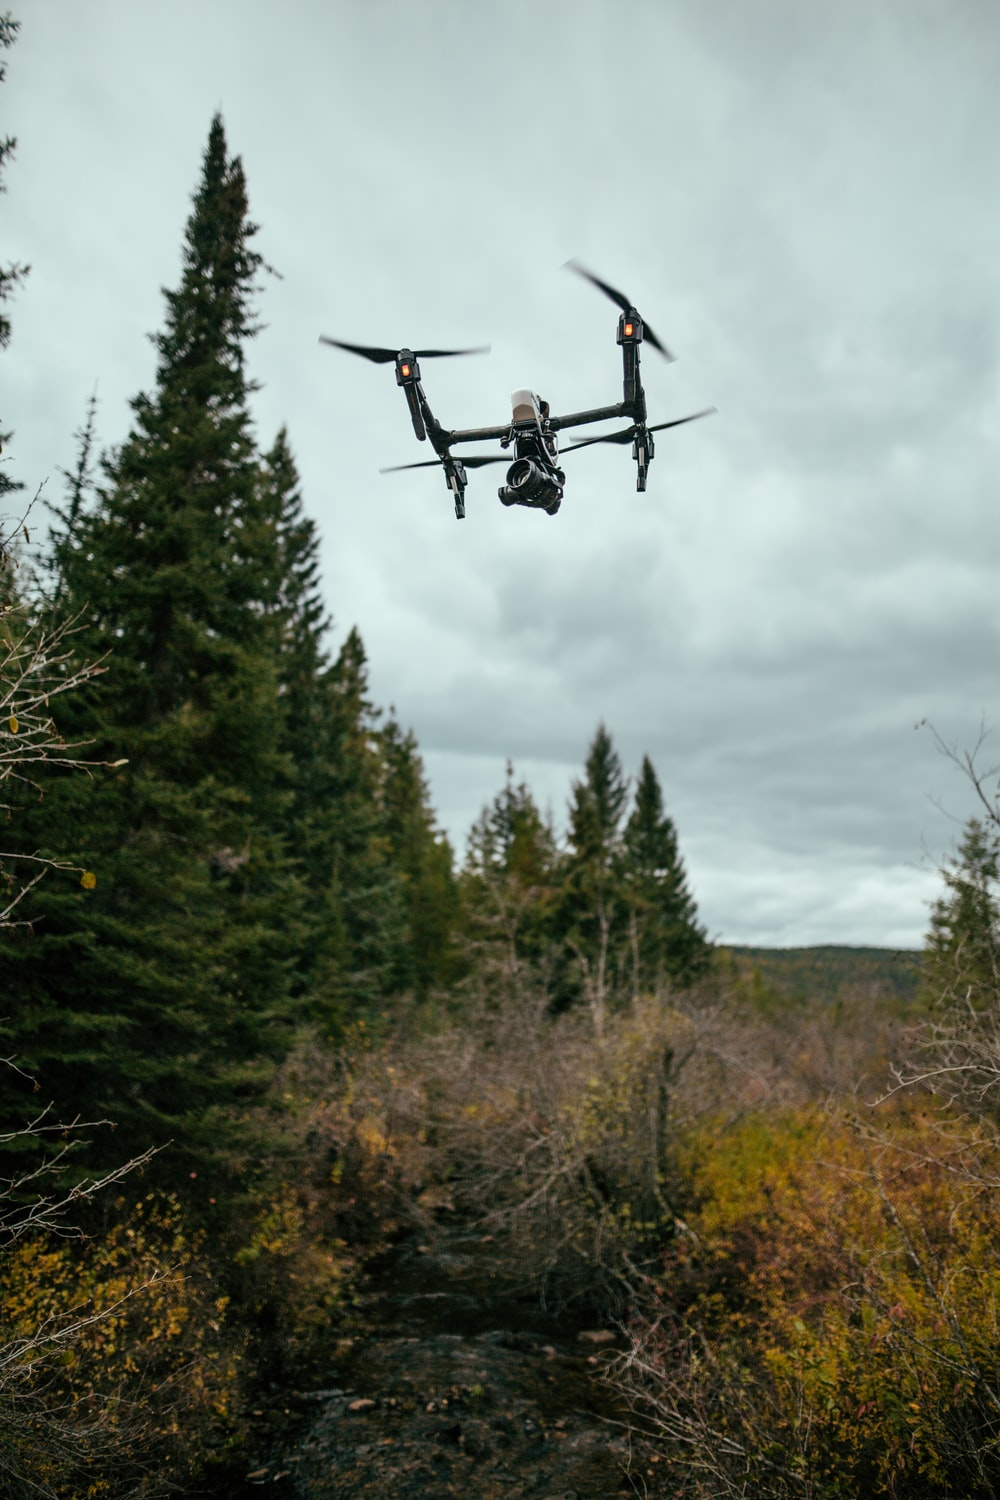 quadcopter drone flying in mid-air during daytime